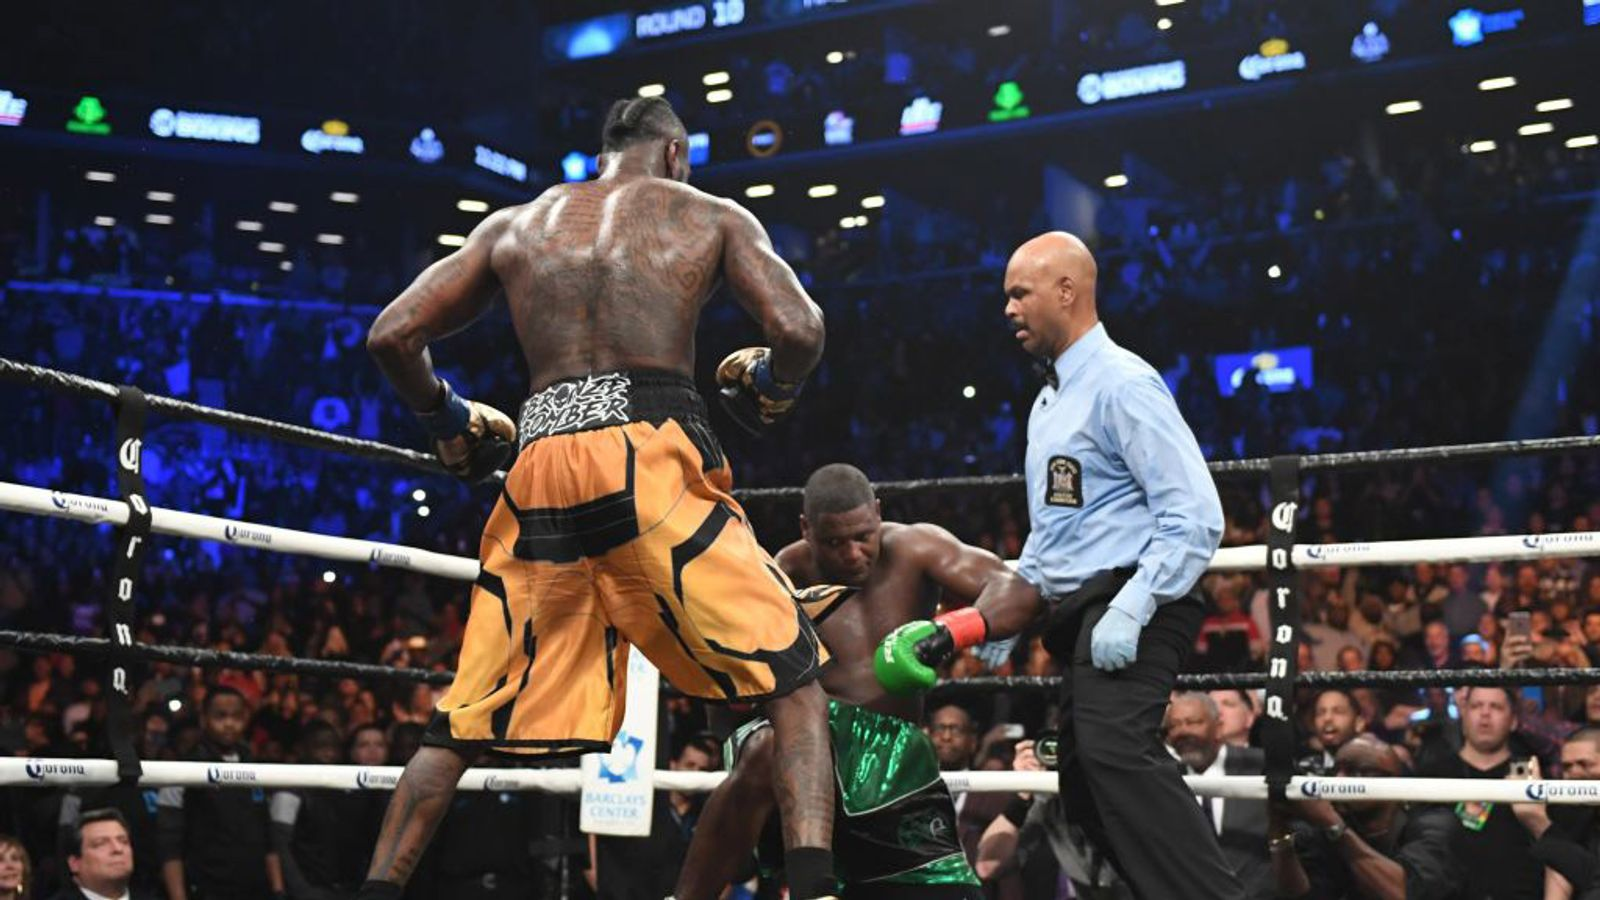 f15bbe134790 Wilder vs Ortiz: Deontay Wilder stops Luis Ortiz in the 10th round to  retain WBC world title | Boxing News | Sky Sports